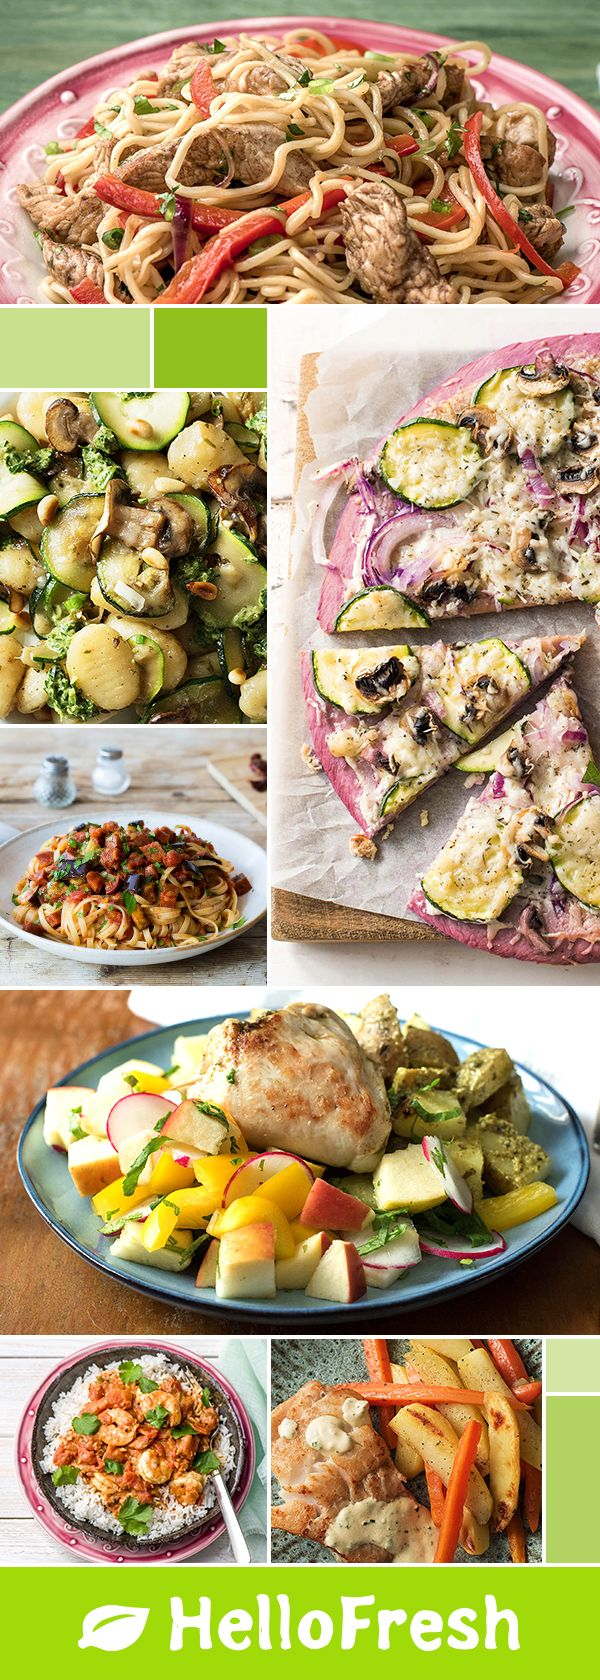 Take 50% off your 1st box of HelloFresh. We shop, plan, and deliver step-by-step recipes and ingredients, so you can just relax and enjoy all there is to love about cooking. And eating.